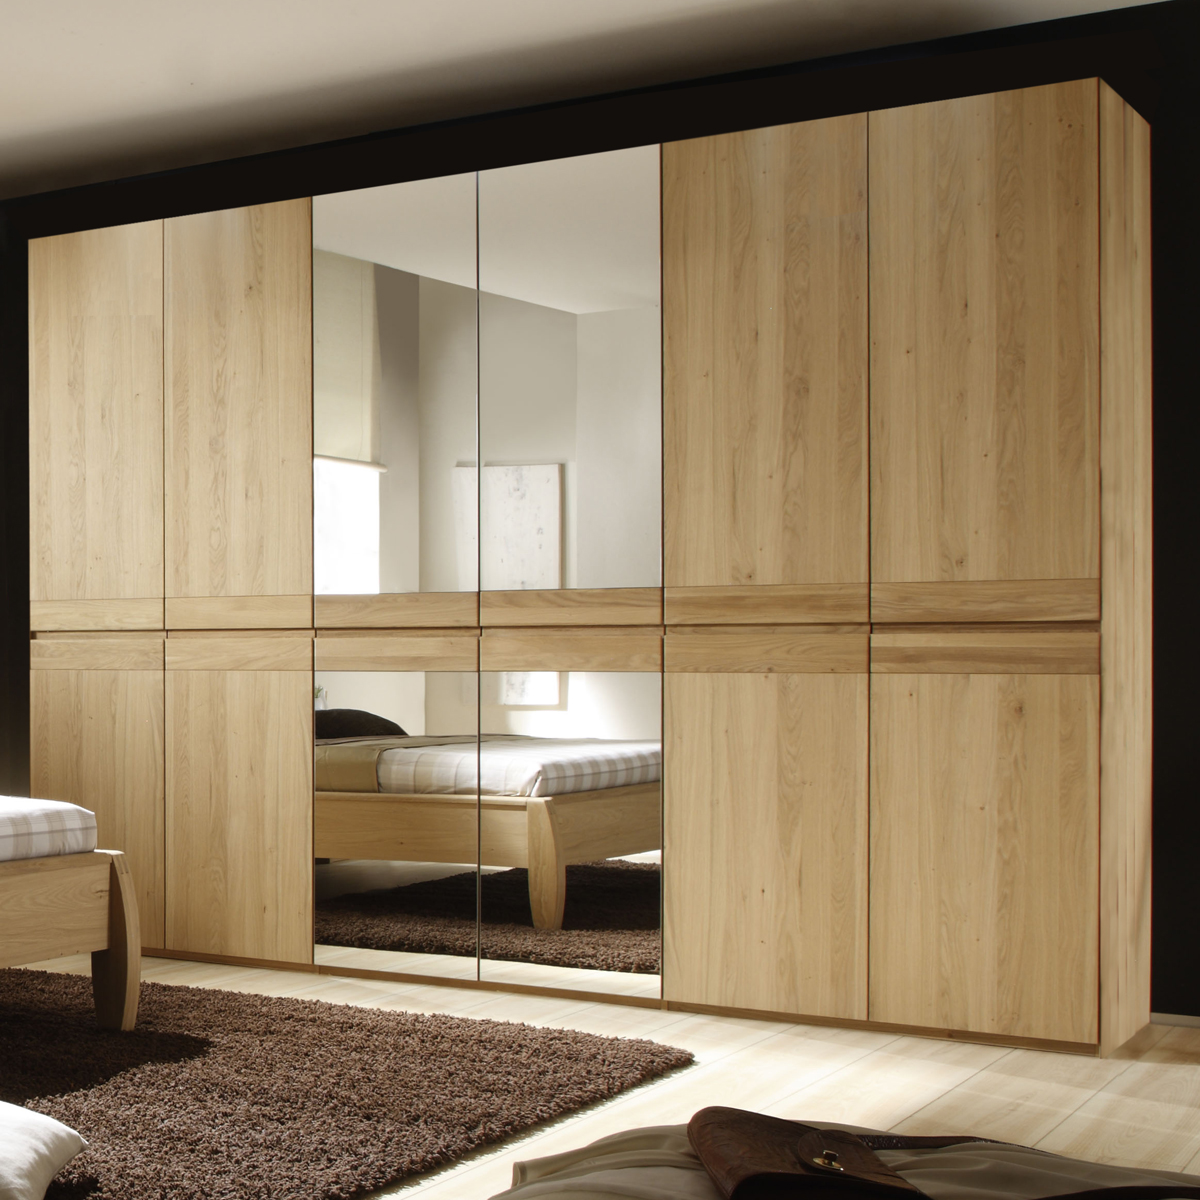 kleiderschrank yuma 6 t rig schrank schlafzimmer in eiche bianco massiv. Black Bedroom Furniture Sets. Home Design Ideas